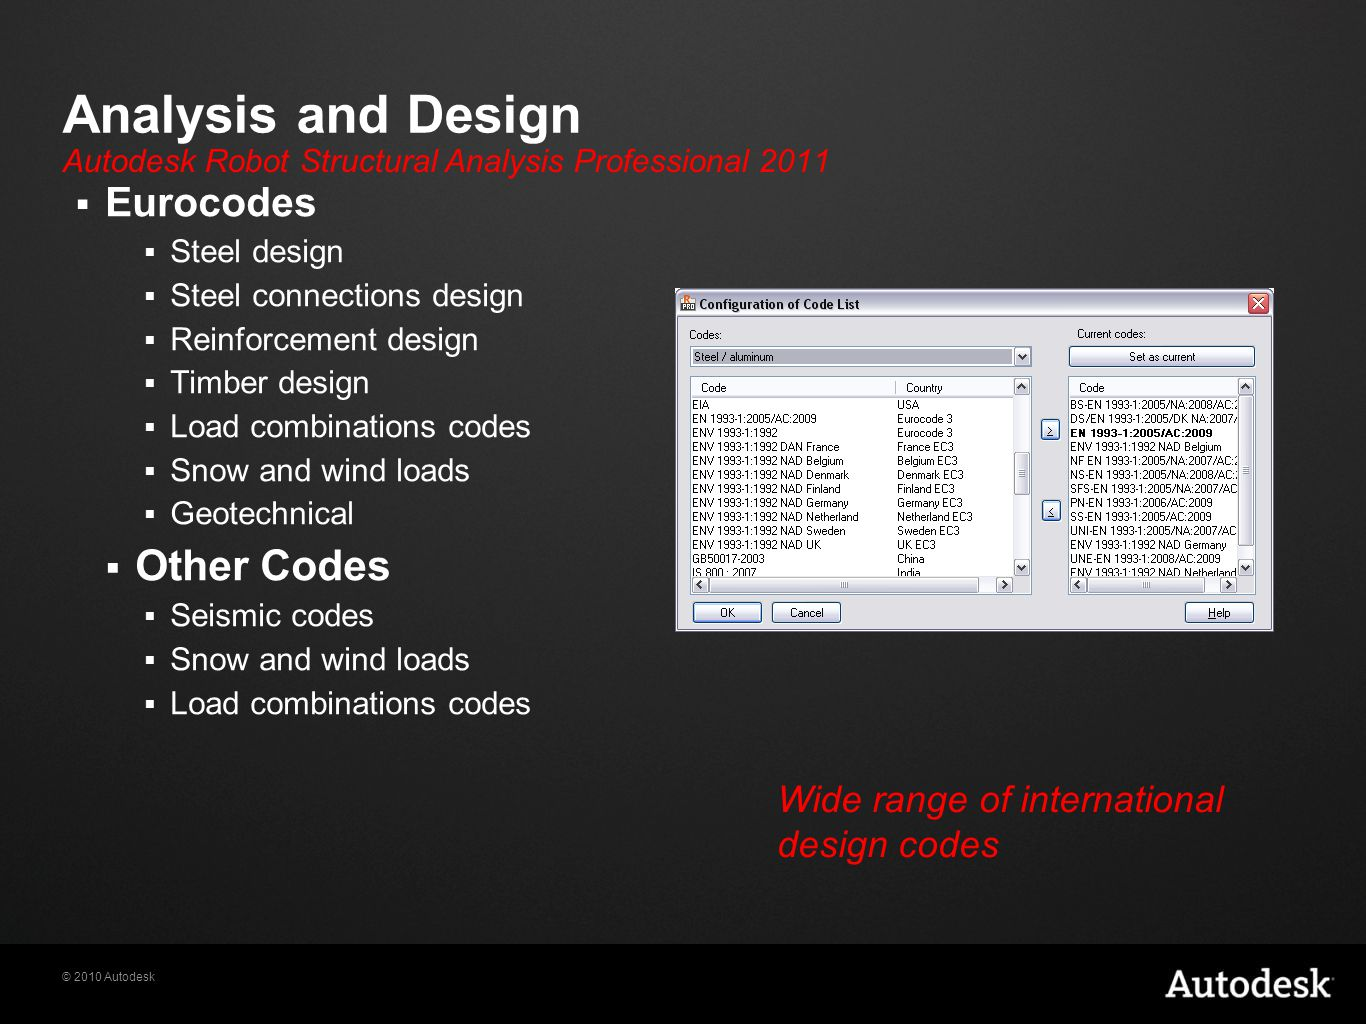 © 2010 Autodesk Analysis and Design  Eurocodes  Steel design  Steel connections design  Reinforcement design  Timber design  Load combinations codes  Snow and wind loads  Geotechnical  Other Codes  Seismic codes  Snow and wind loads  Load combinations codes Wide range of international design codes Autodesk Robot Structural Analysis Professional 2011